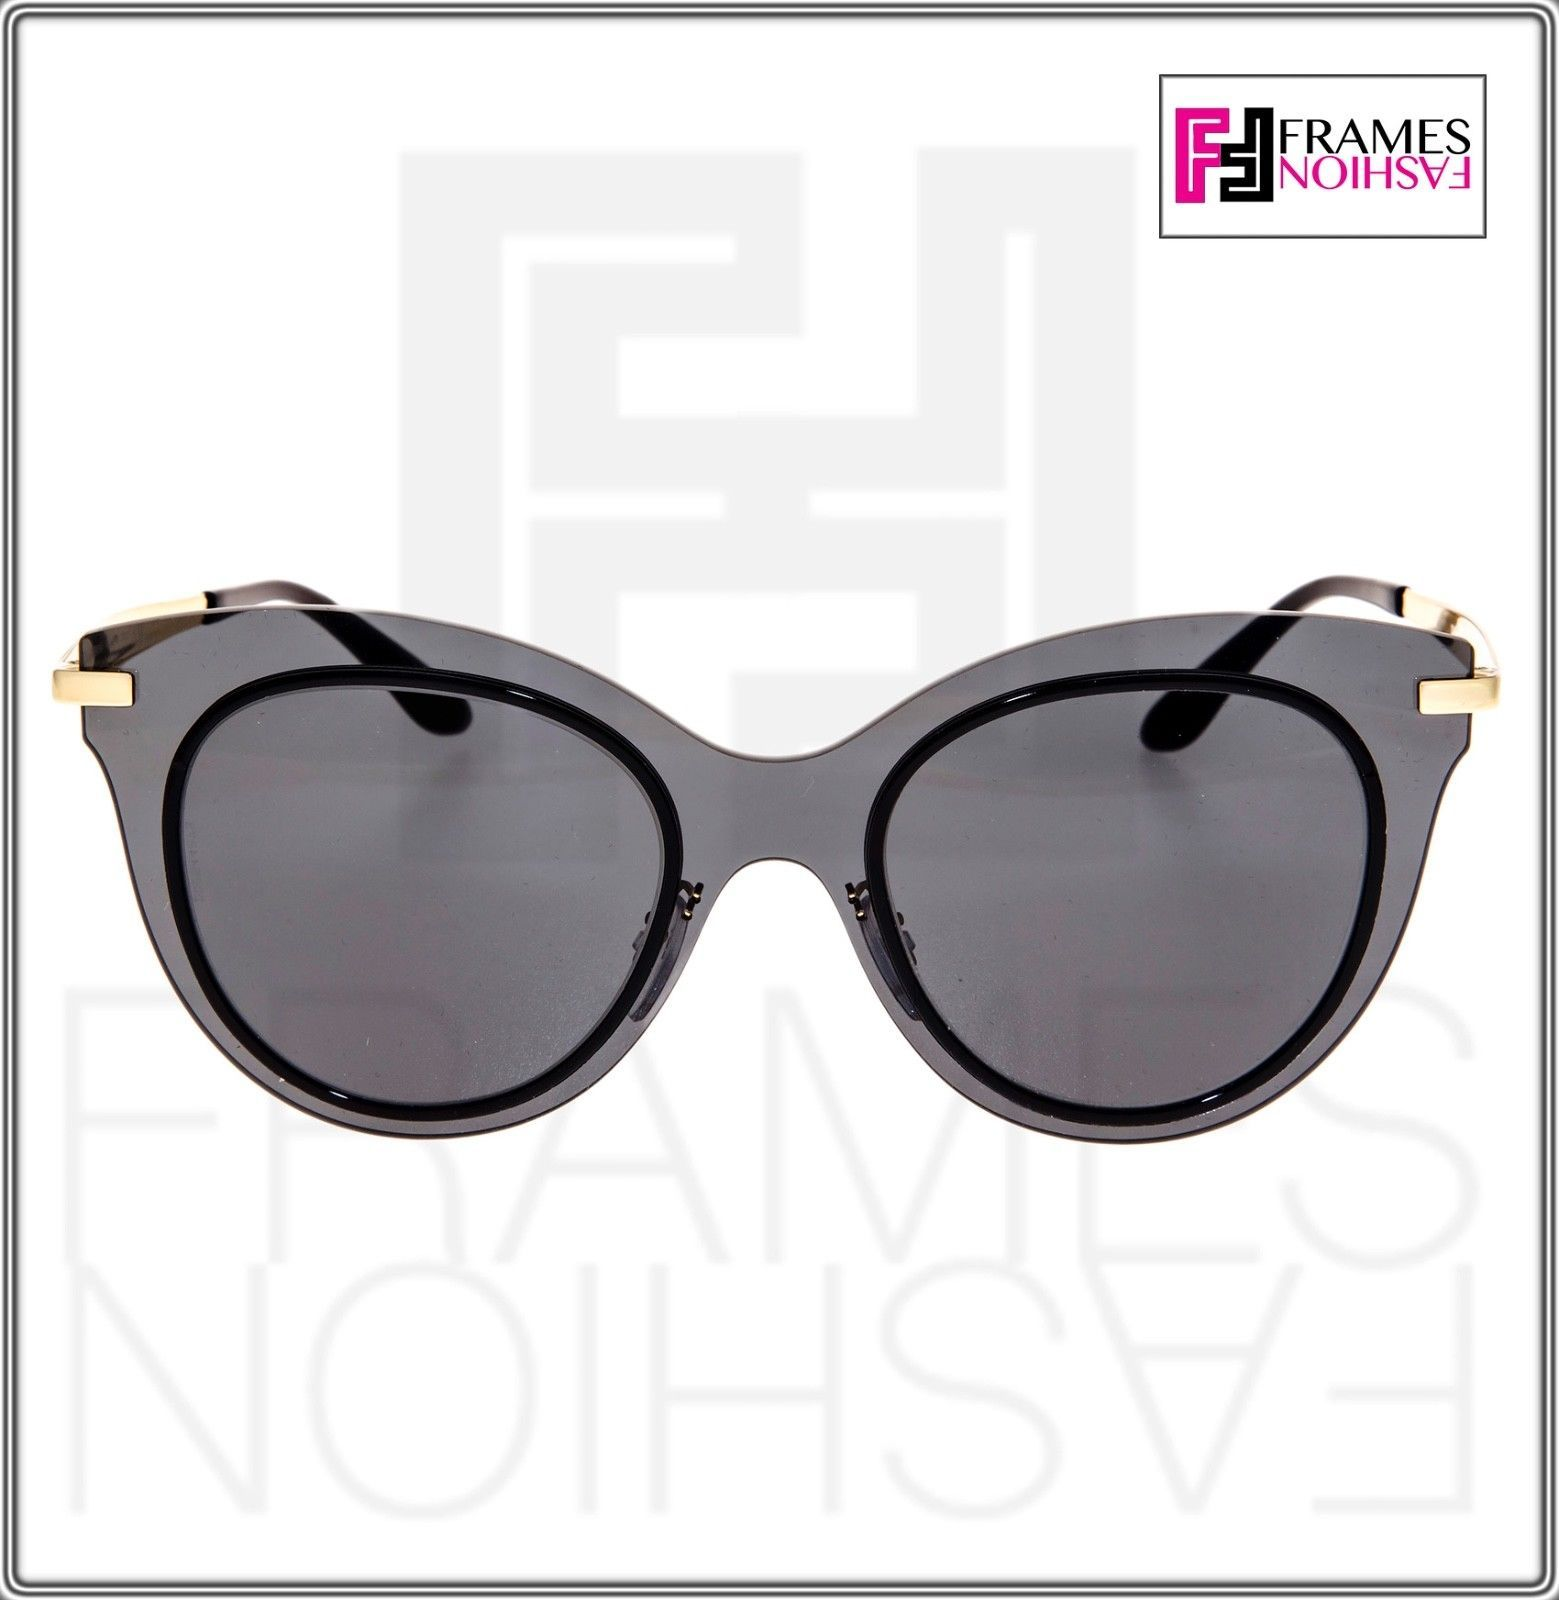 Dolce & Gabbana 2172 Gold Black Mirror Cat Eye Shield Sunglasses DG2172 Women